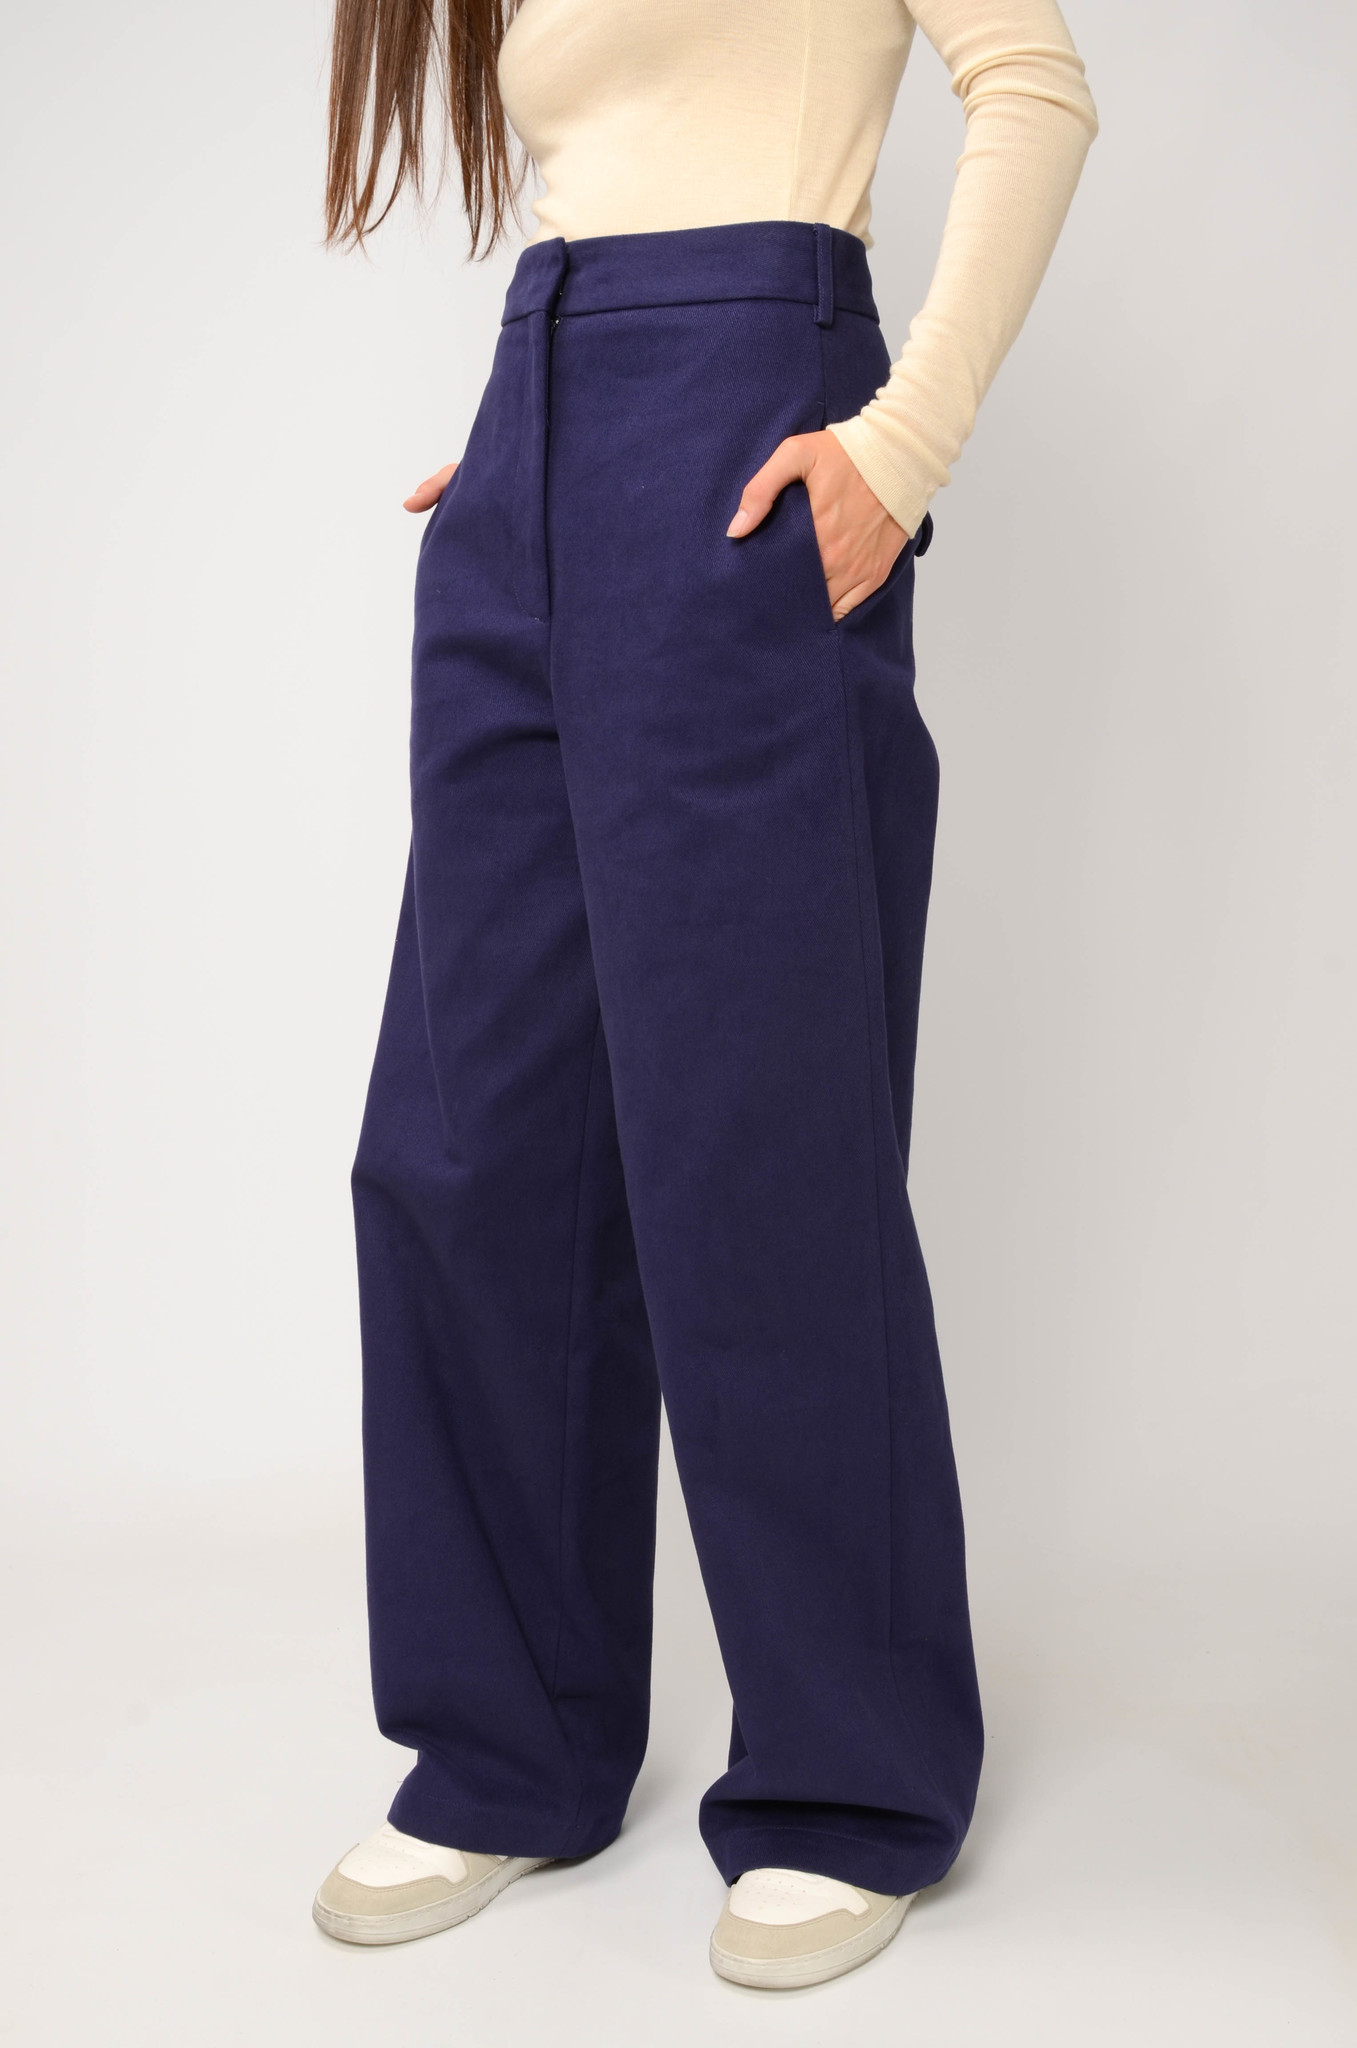 ANNIE TROUSERS IN NAVY BLUE-5